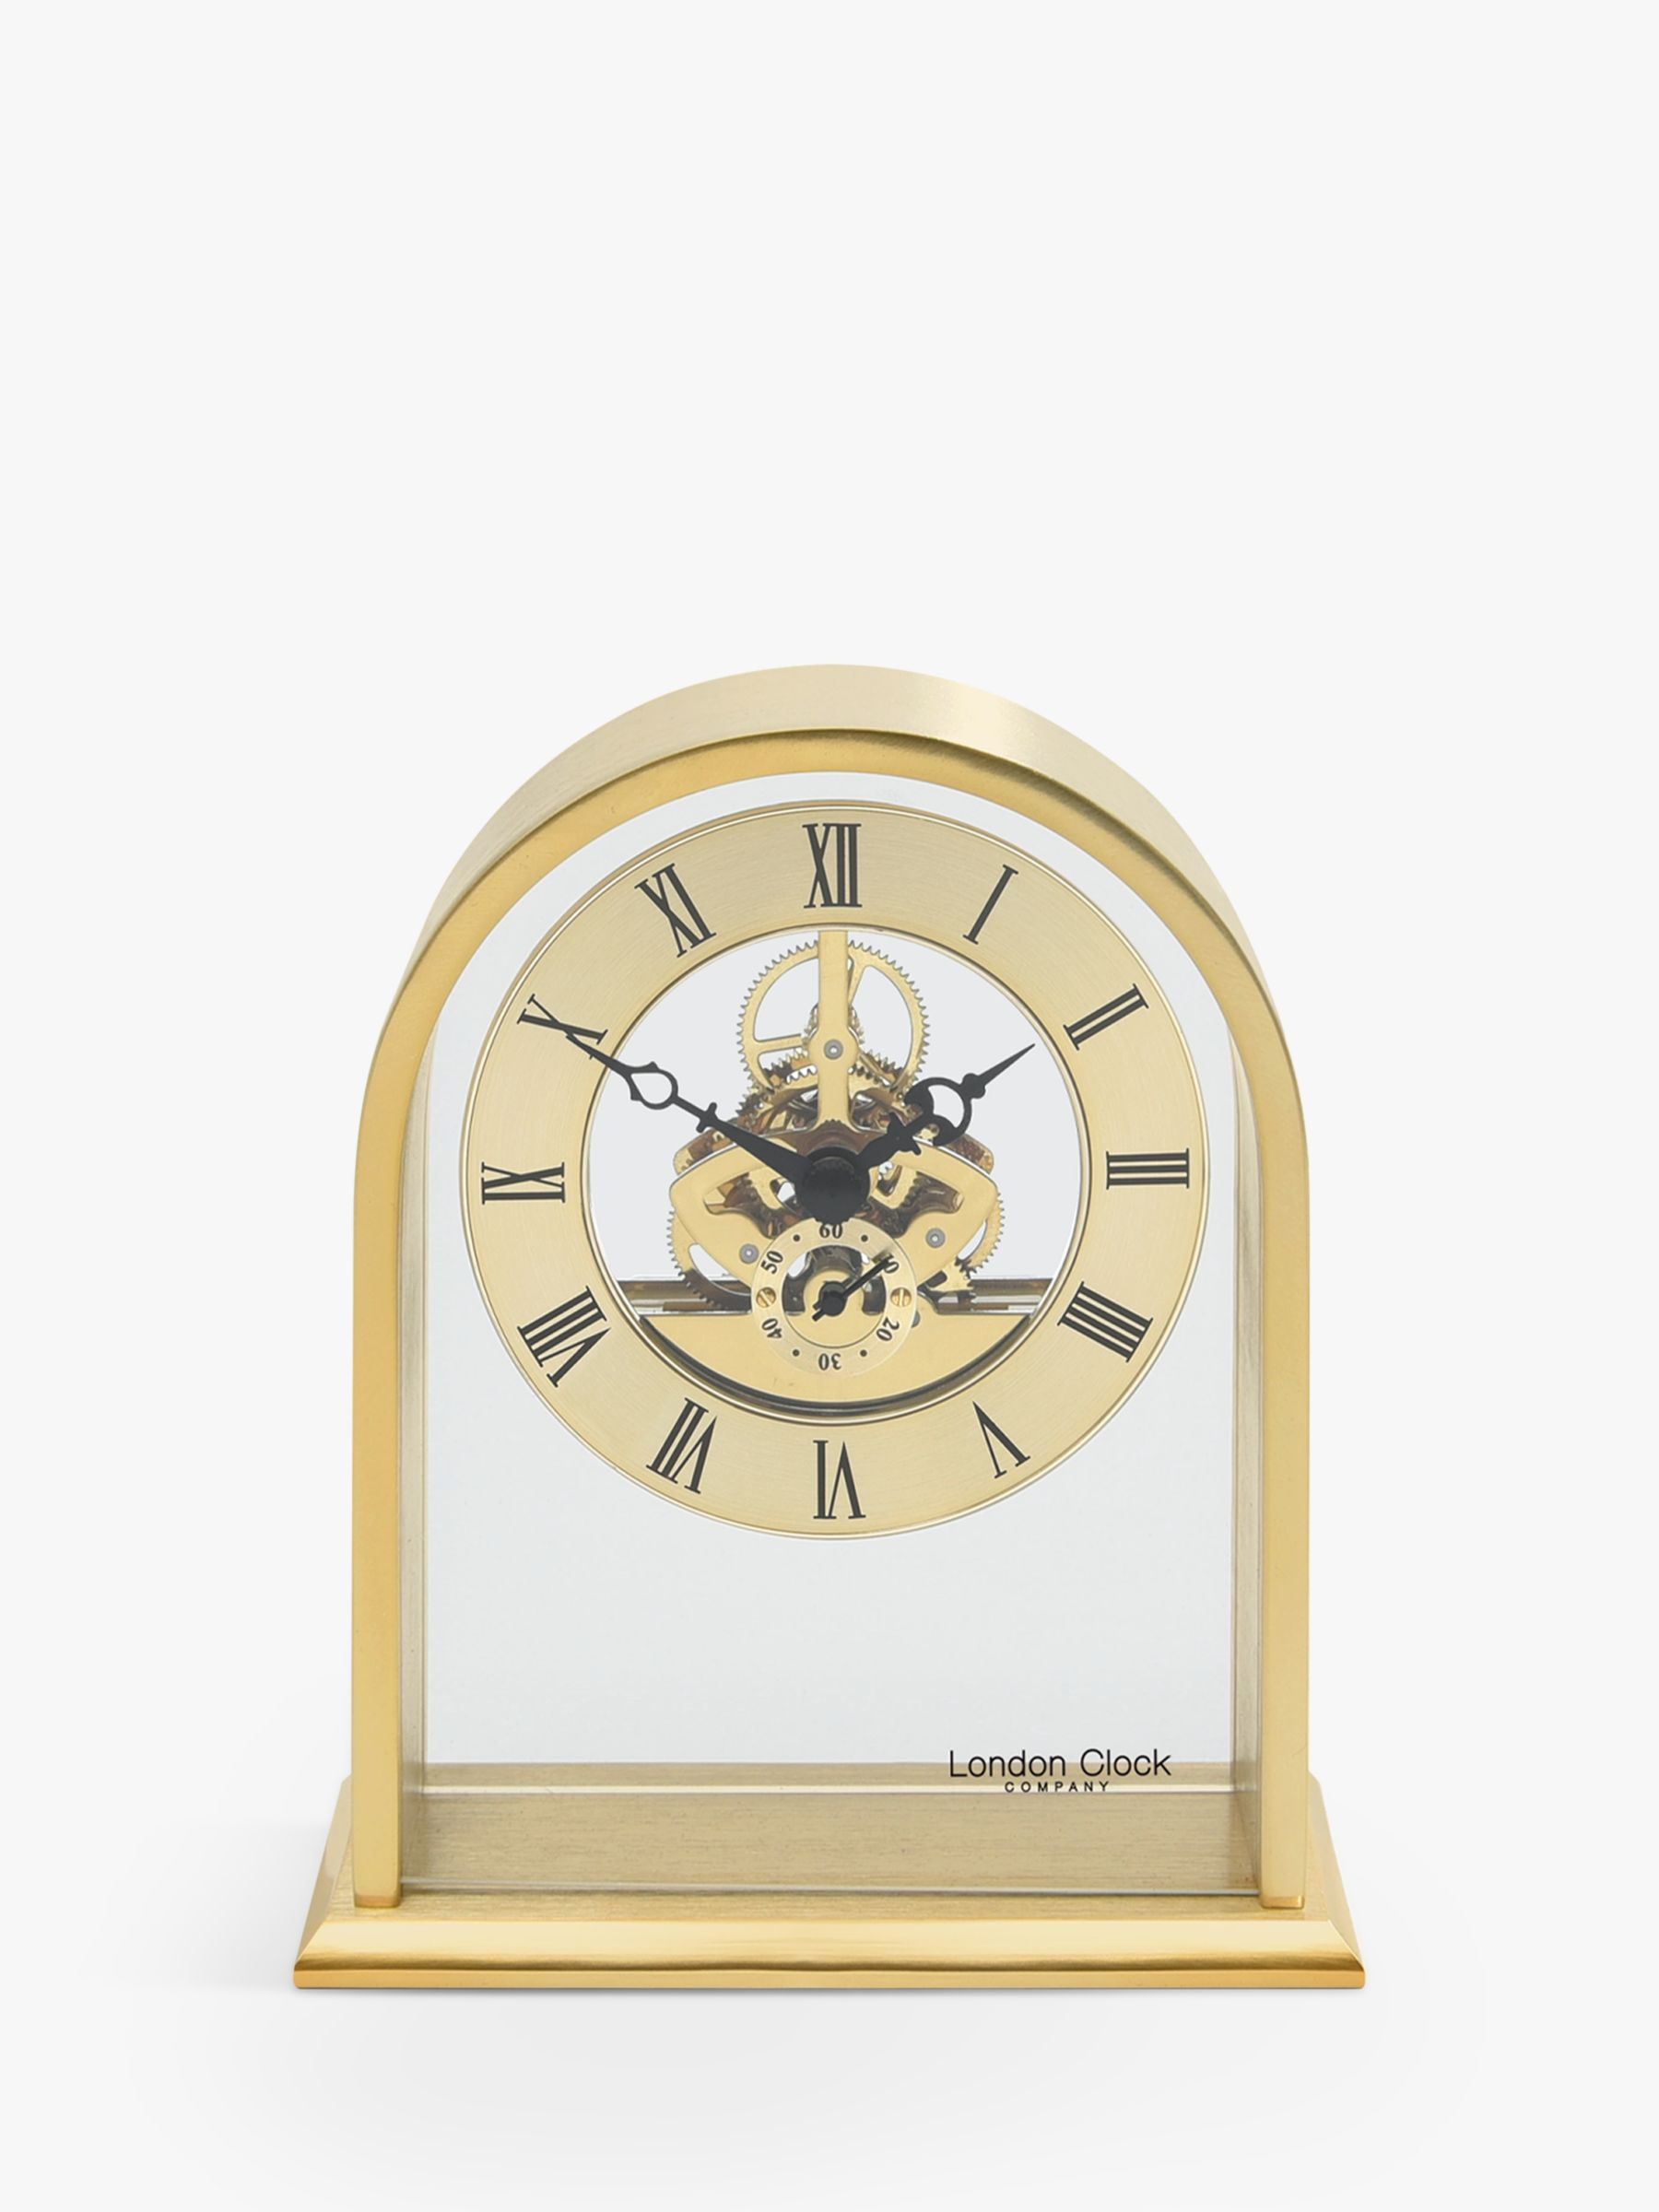 London Clock Company Arched Roman Numeral Analogue Skeleton Mantel Clock, Gold